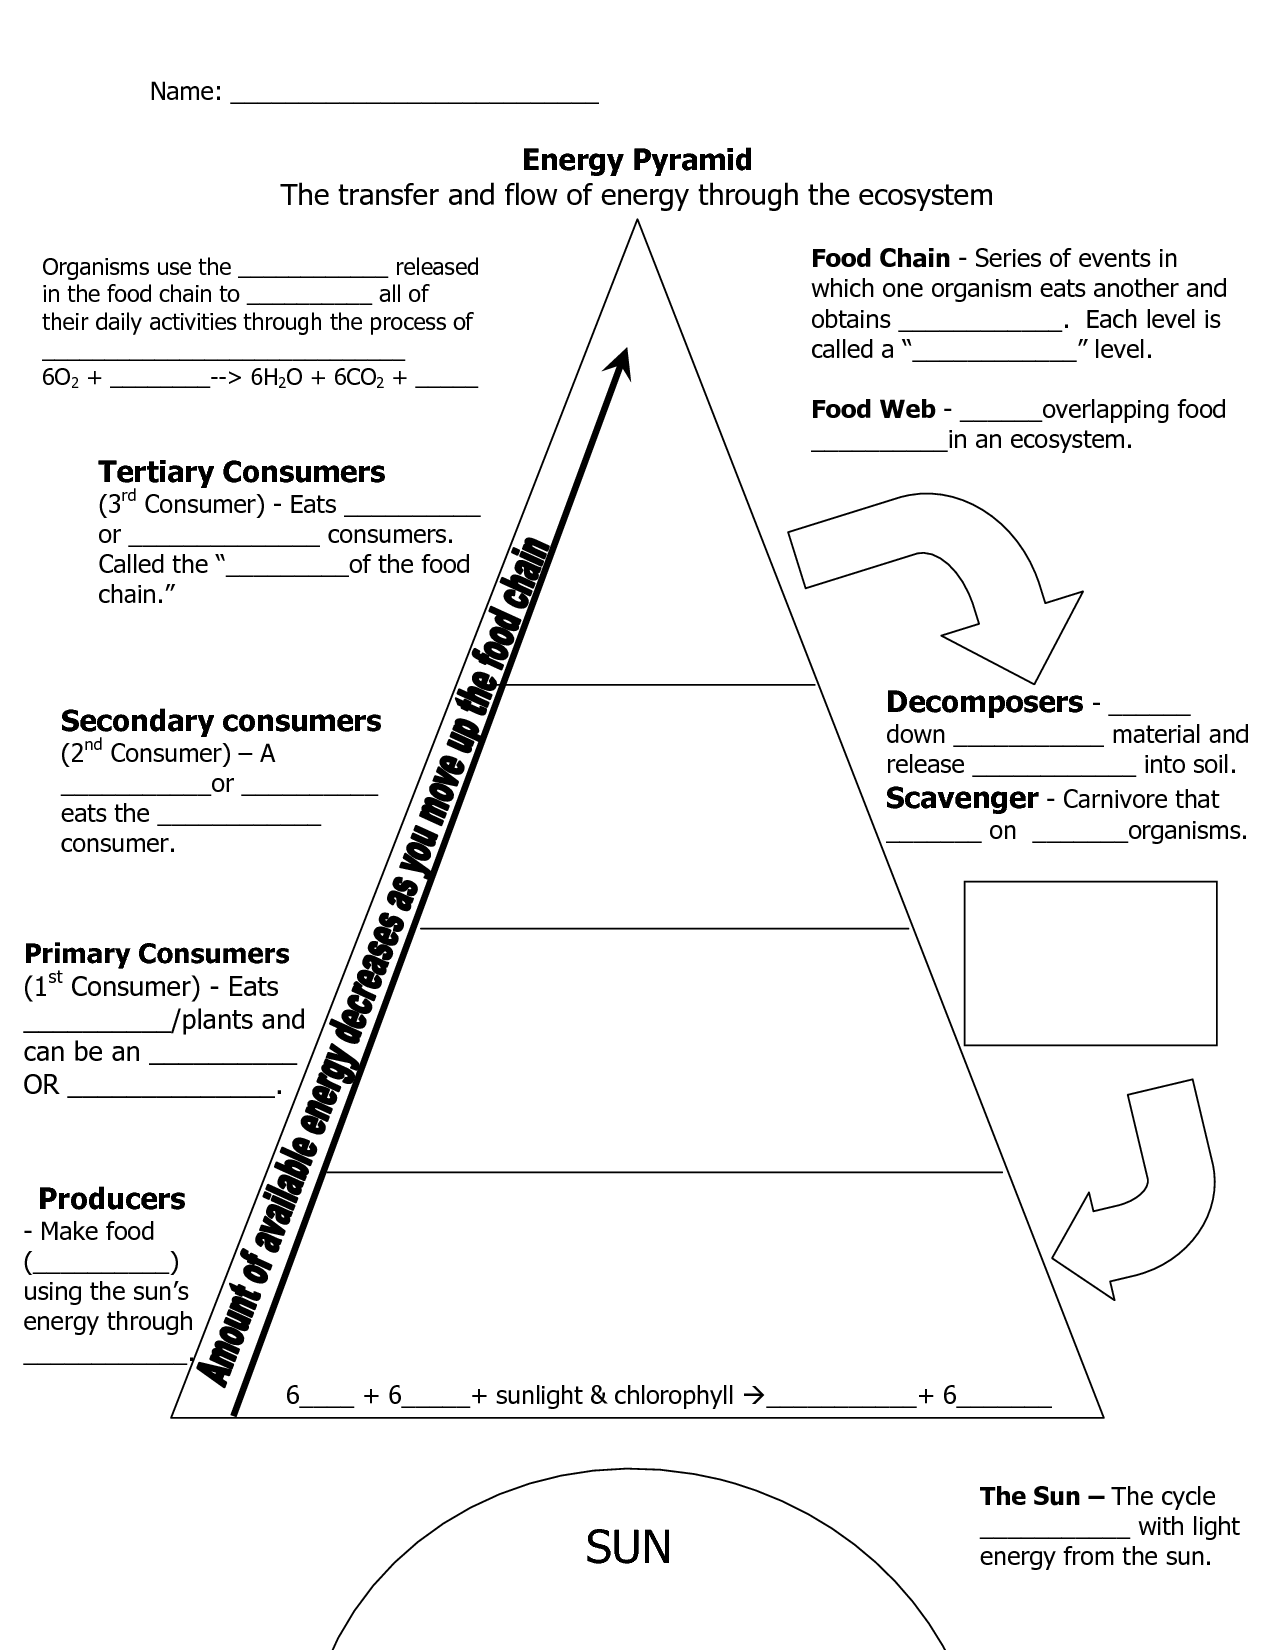 Worksheets Ecological Pyramids Worksheet ecological pyramid worksheet energy worksheets middle school invitation samples blog pinterest pyra